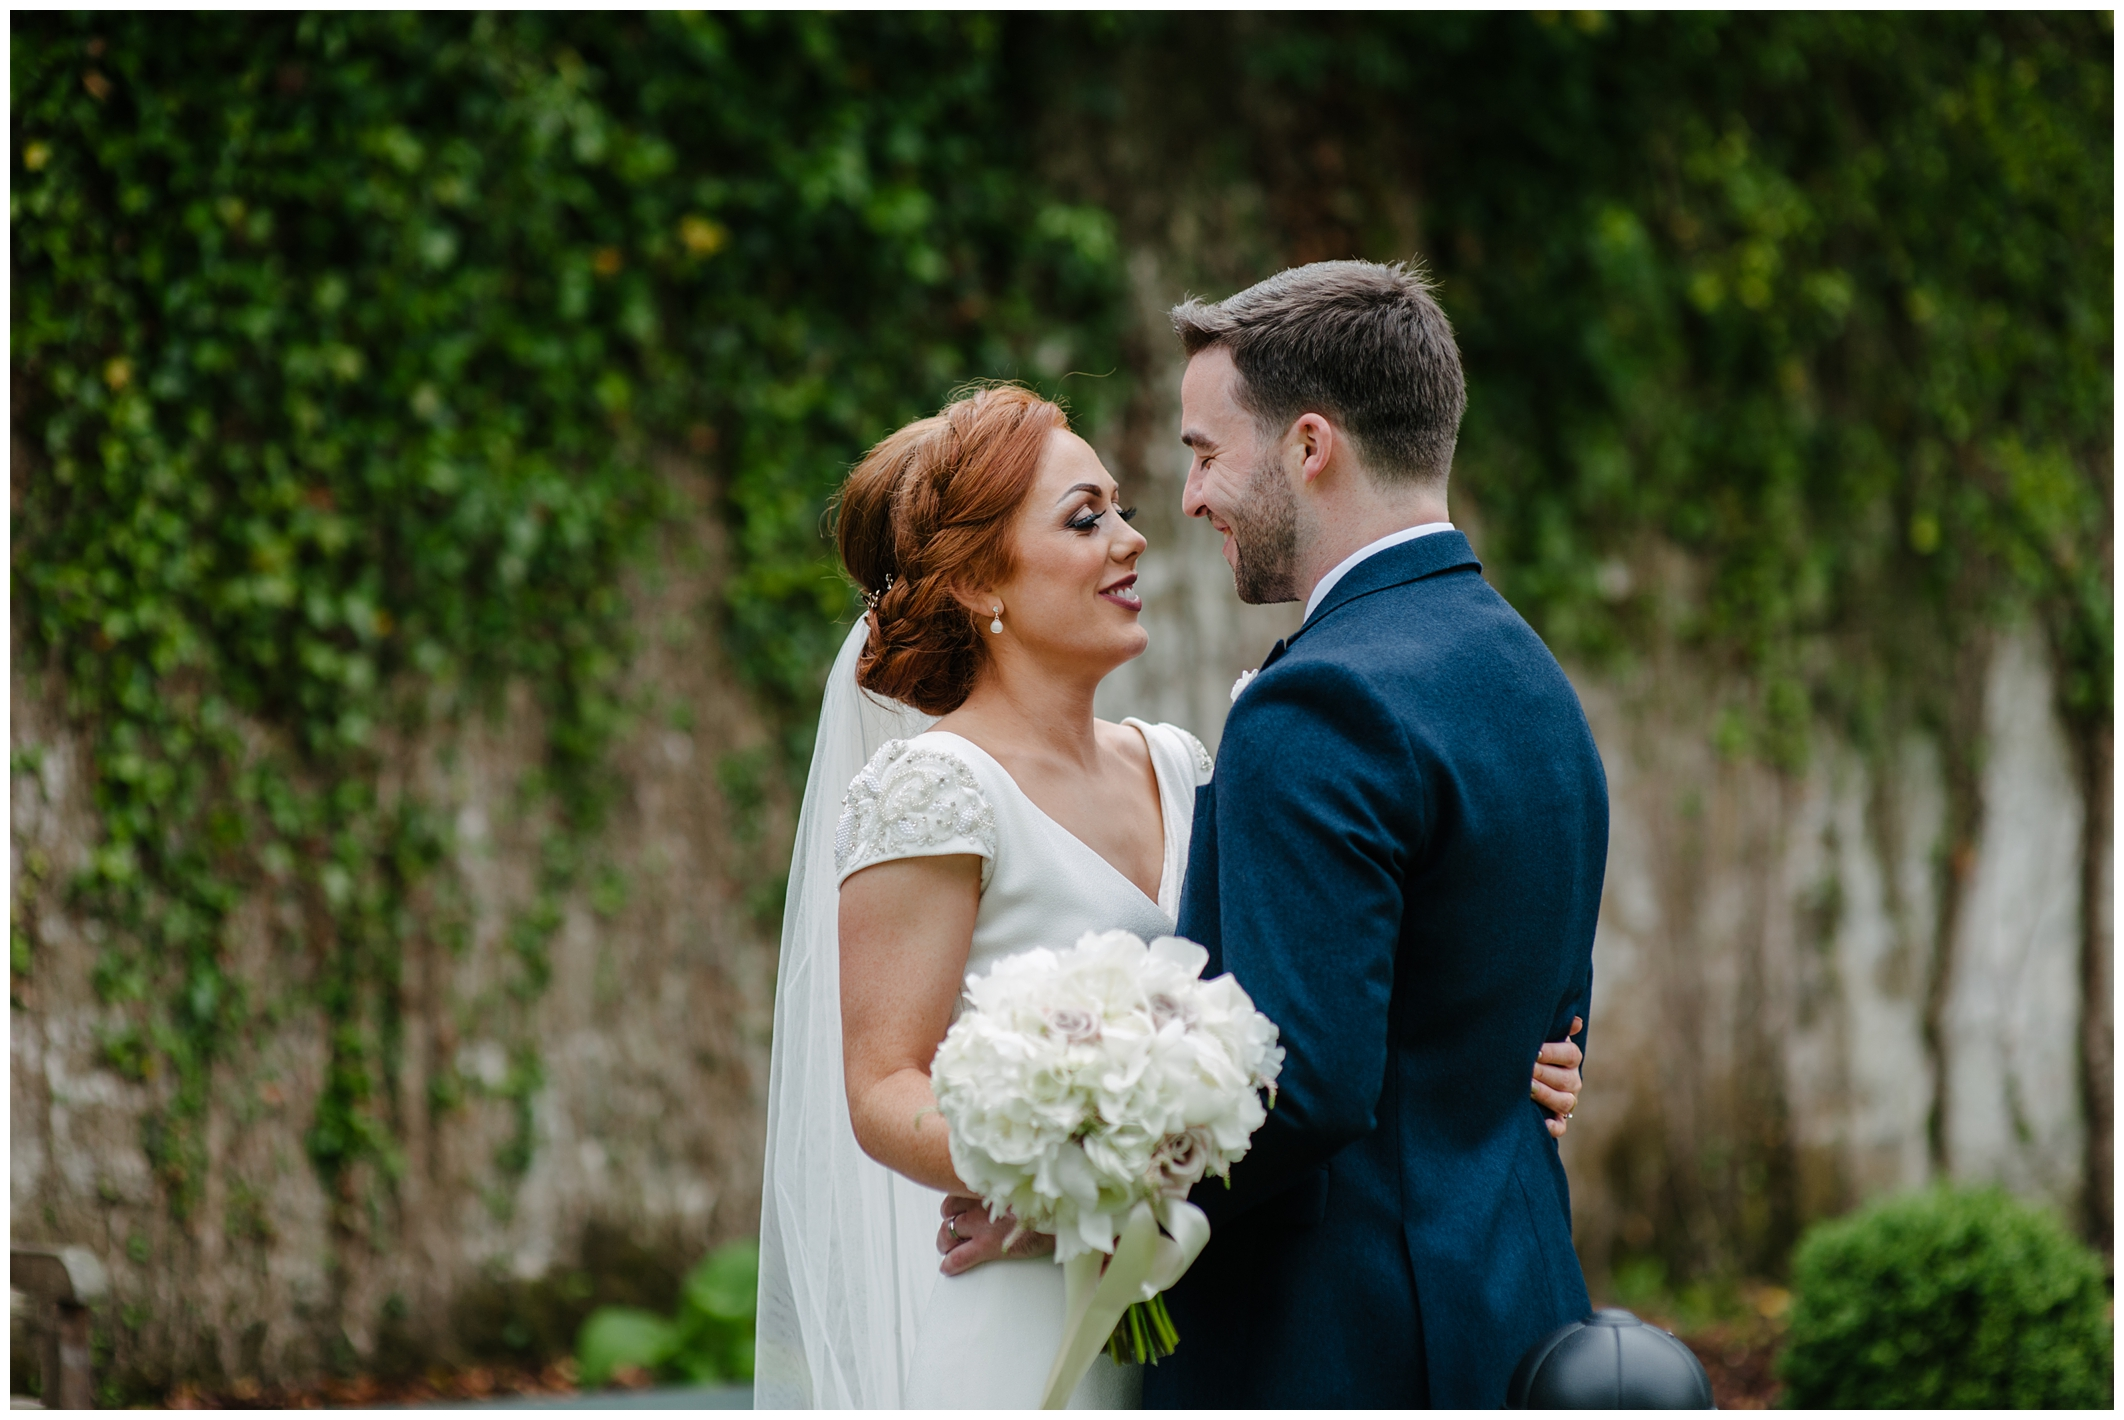 sinead_emmet_farnham_estate_wedding_jude_browne_photography_0110.jpg